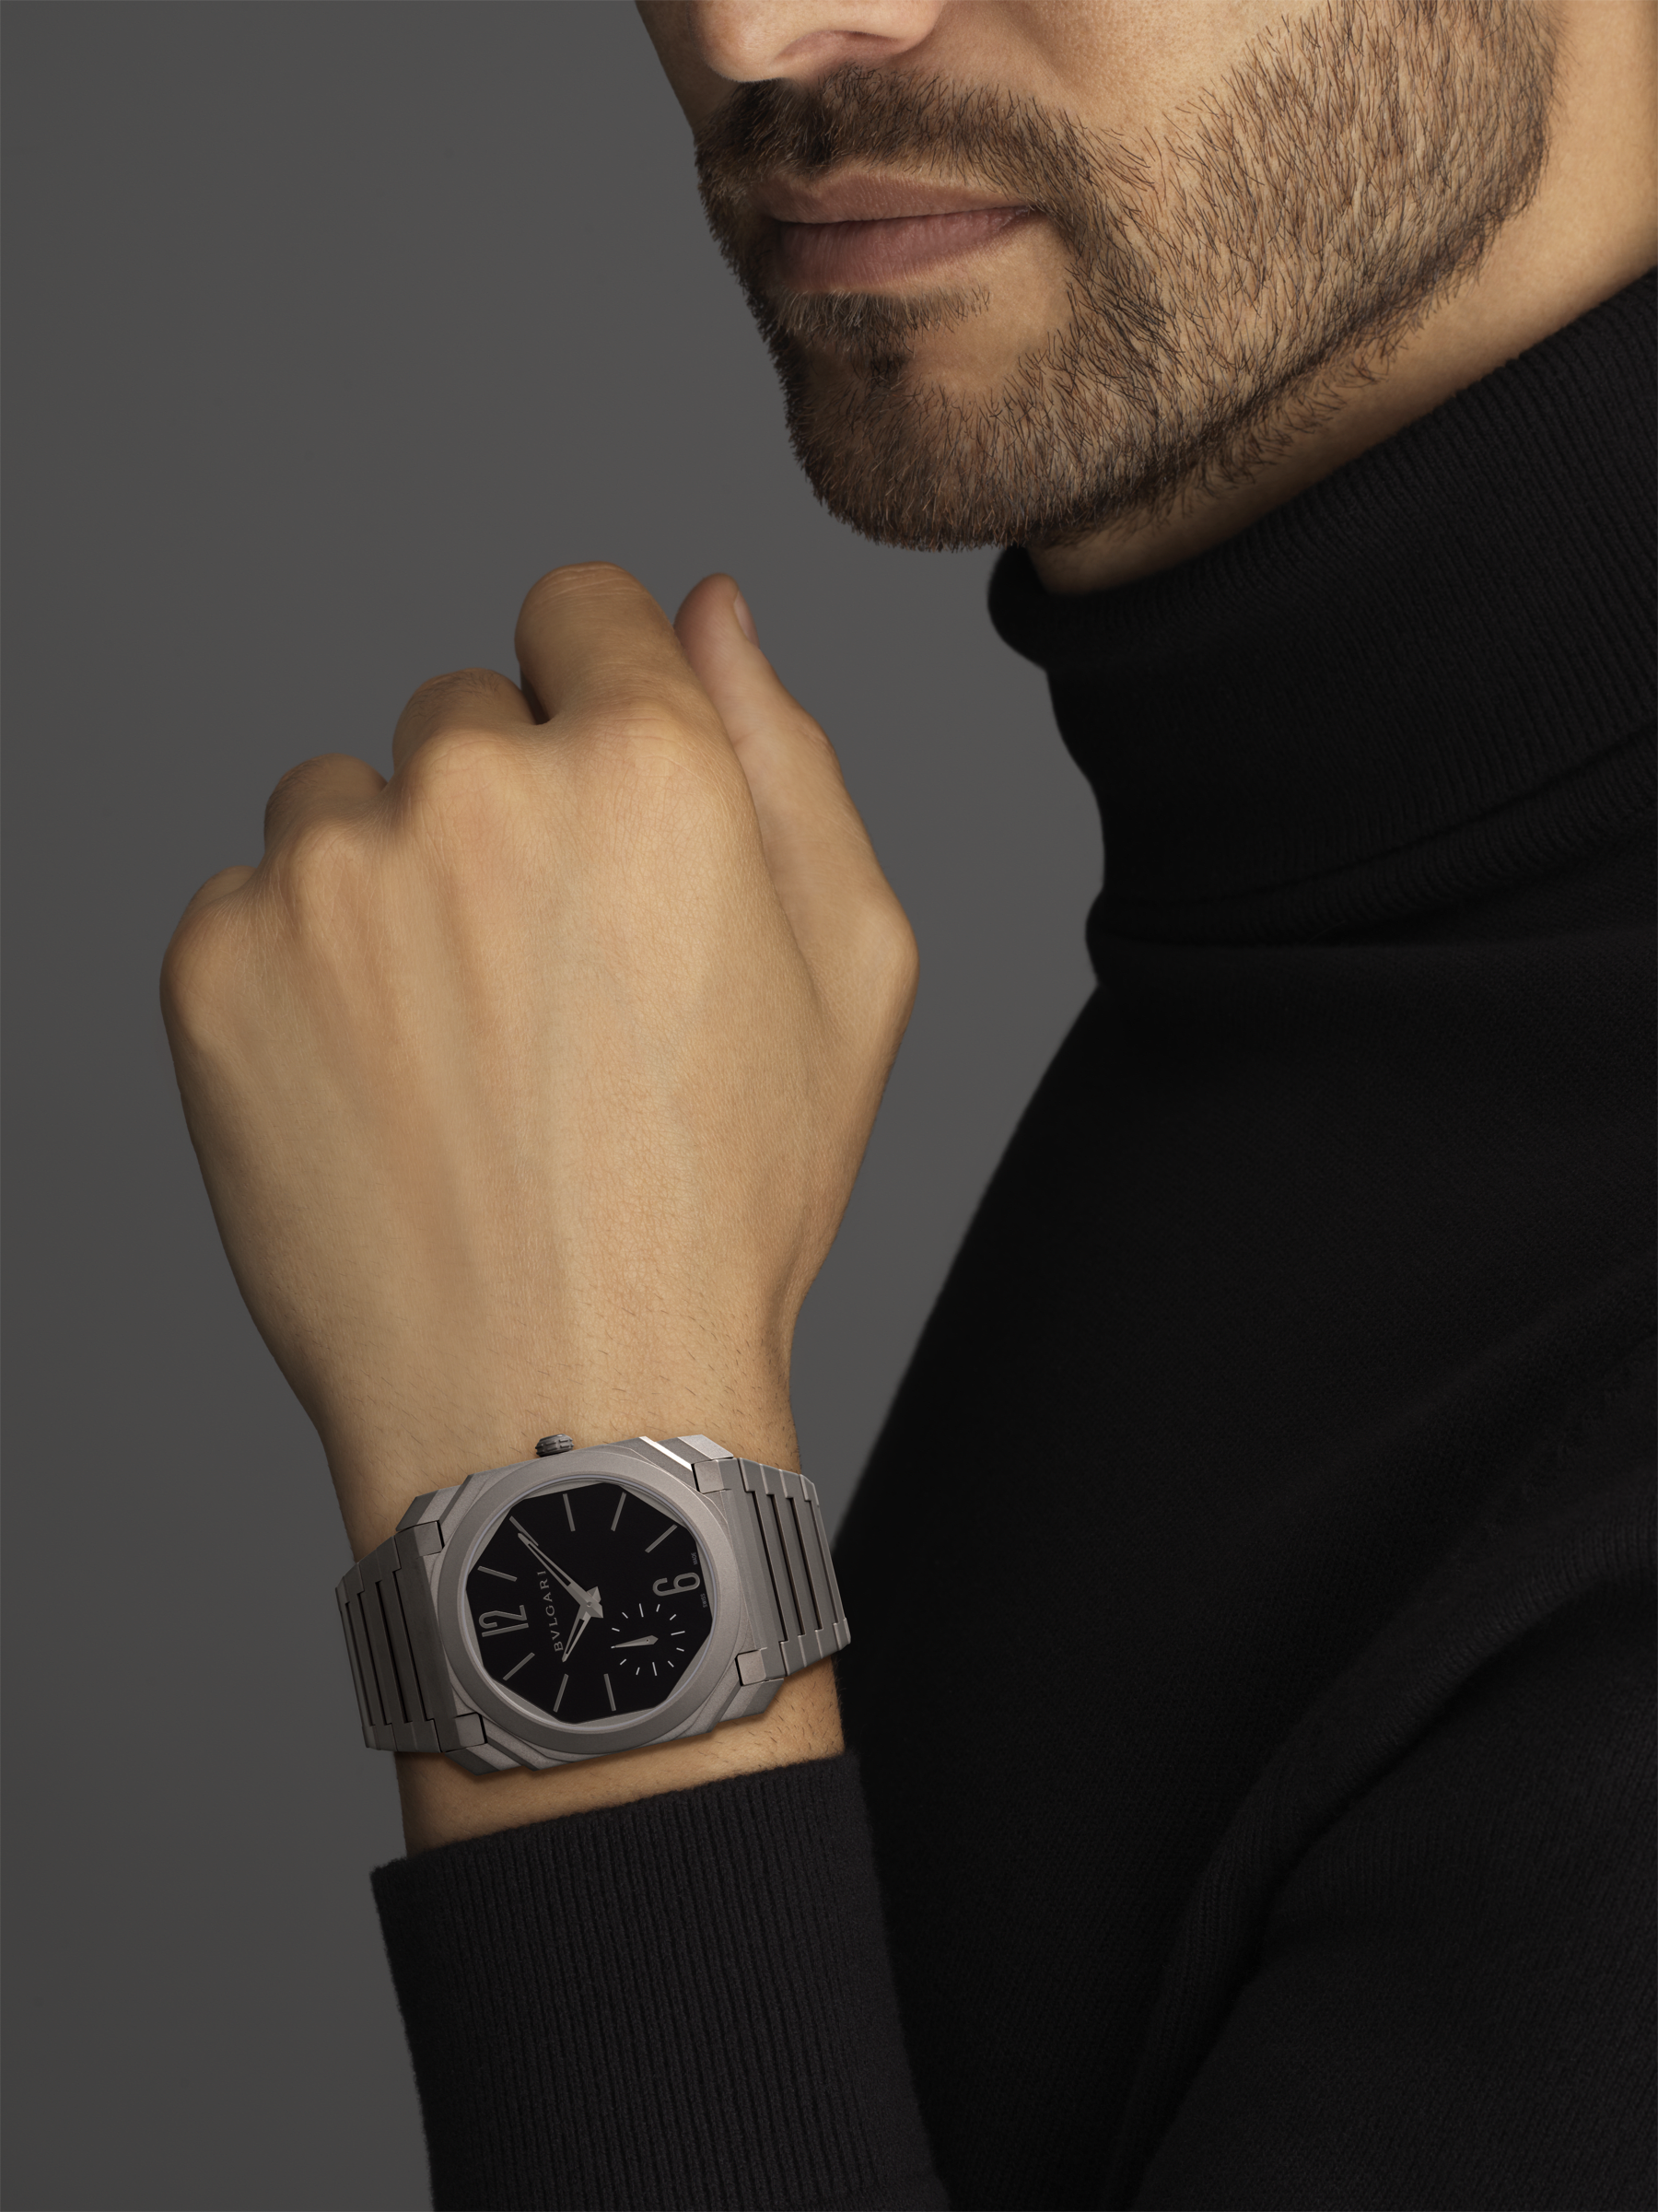 Octo Finissimo Automatic watch with mechanical manufacture movement, automatic winding, platinum microrotor, small seconds, extra-thin satin-polished stainless steel case and bracelet, transparent case back and black matte dial. Water-resistant up to 100 metres 103297 image 5